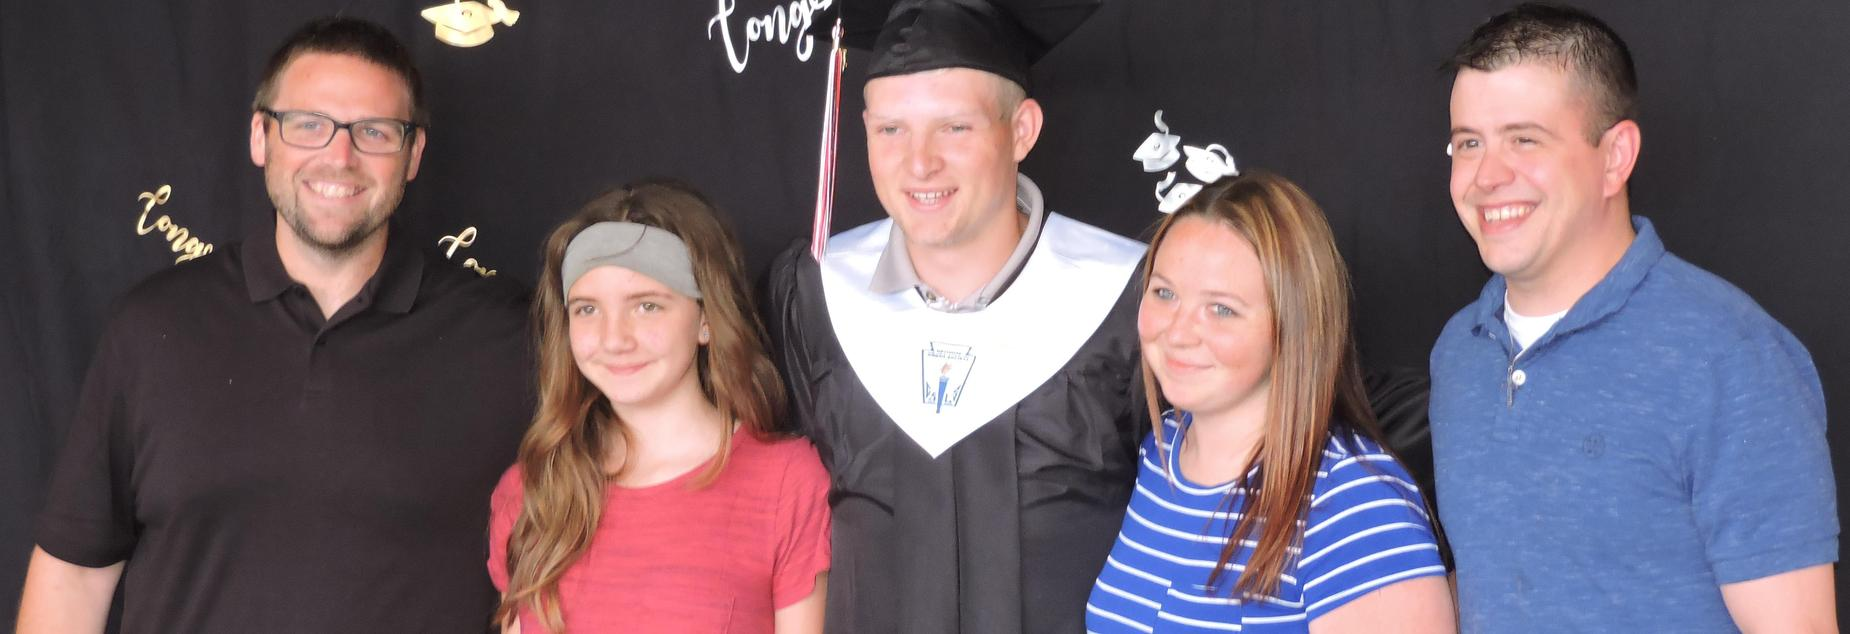 grad and his family